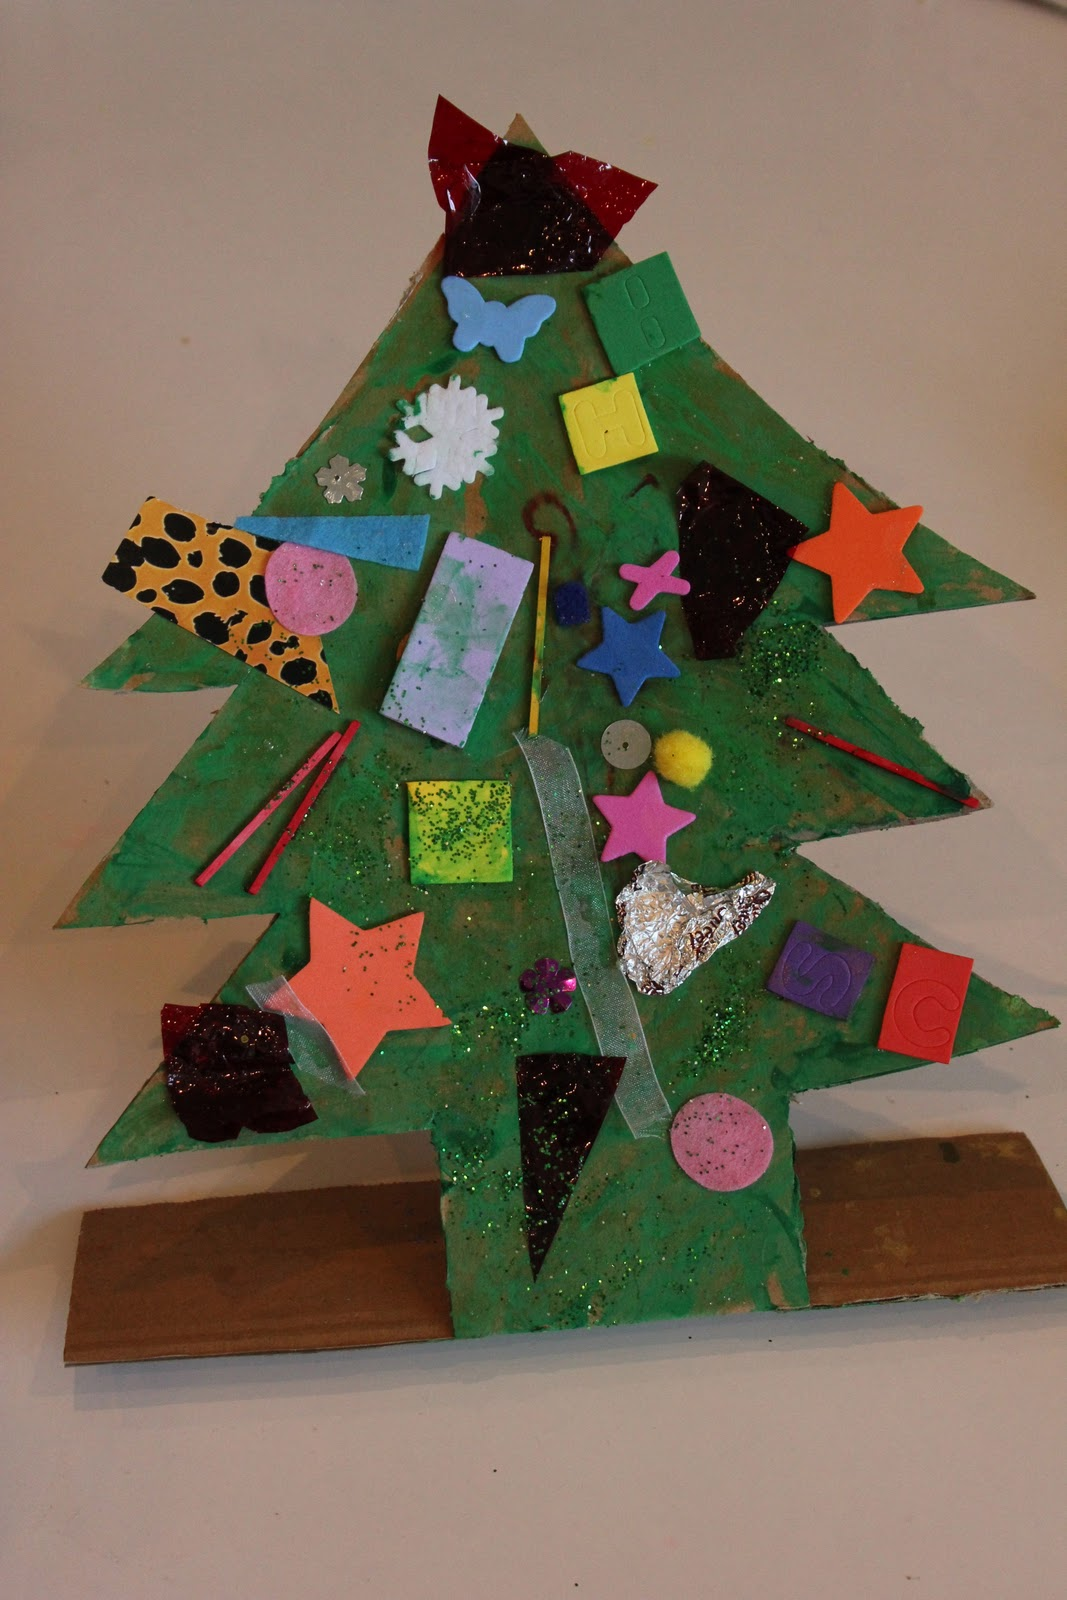 Christmas Decorations Recycled Materials : Christmas tree decorations using recycled materials